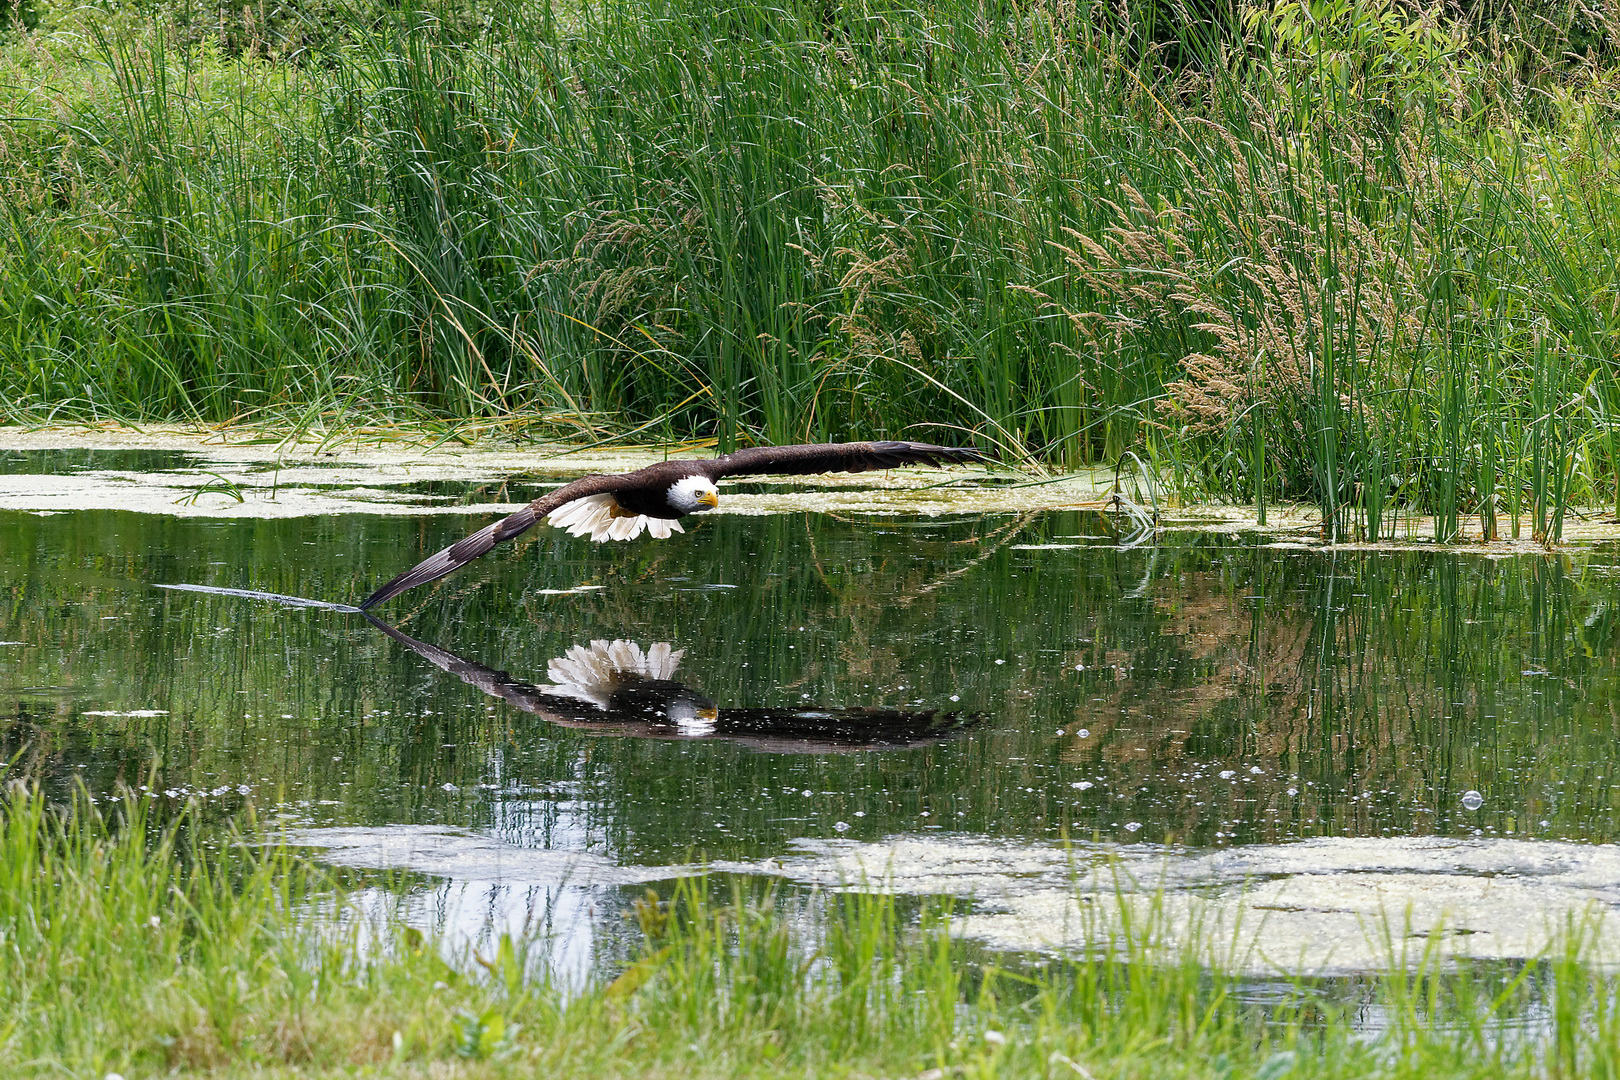 Wing salute by a bald eagle